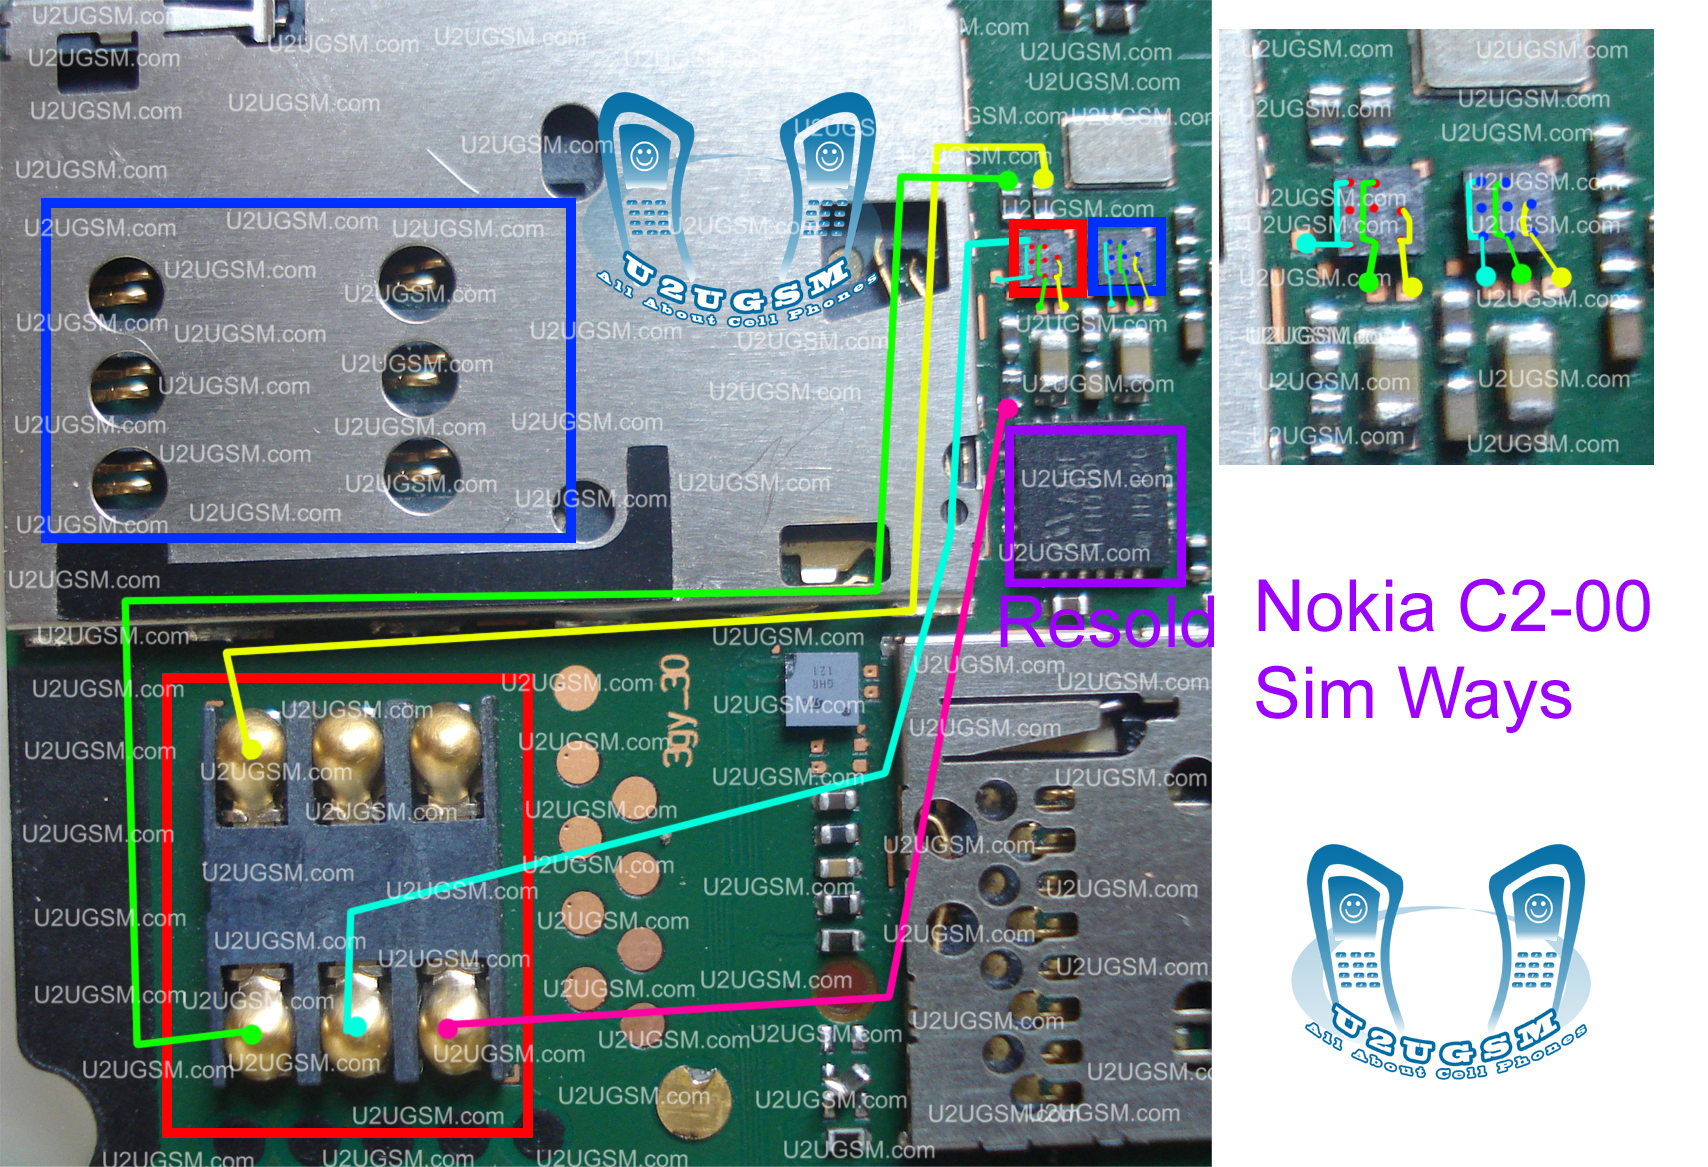 http://www.u2ugsm.com/blog/wp-content/uploads/2012/04/Nokia-C2-00-Insert-Sim-Problem-Solution-Jumpers-Ways..jpg